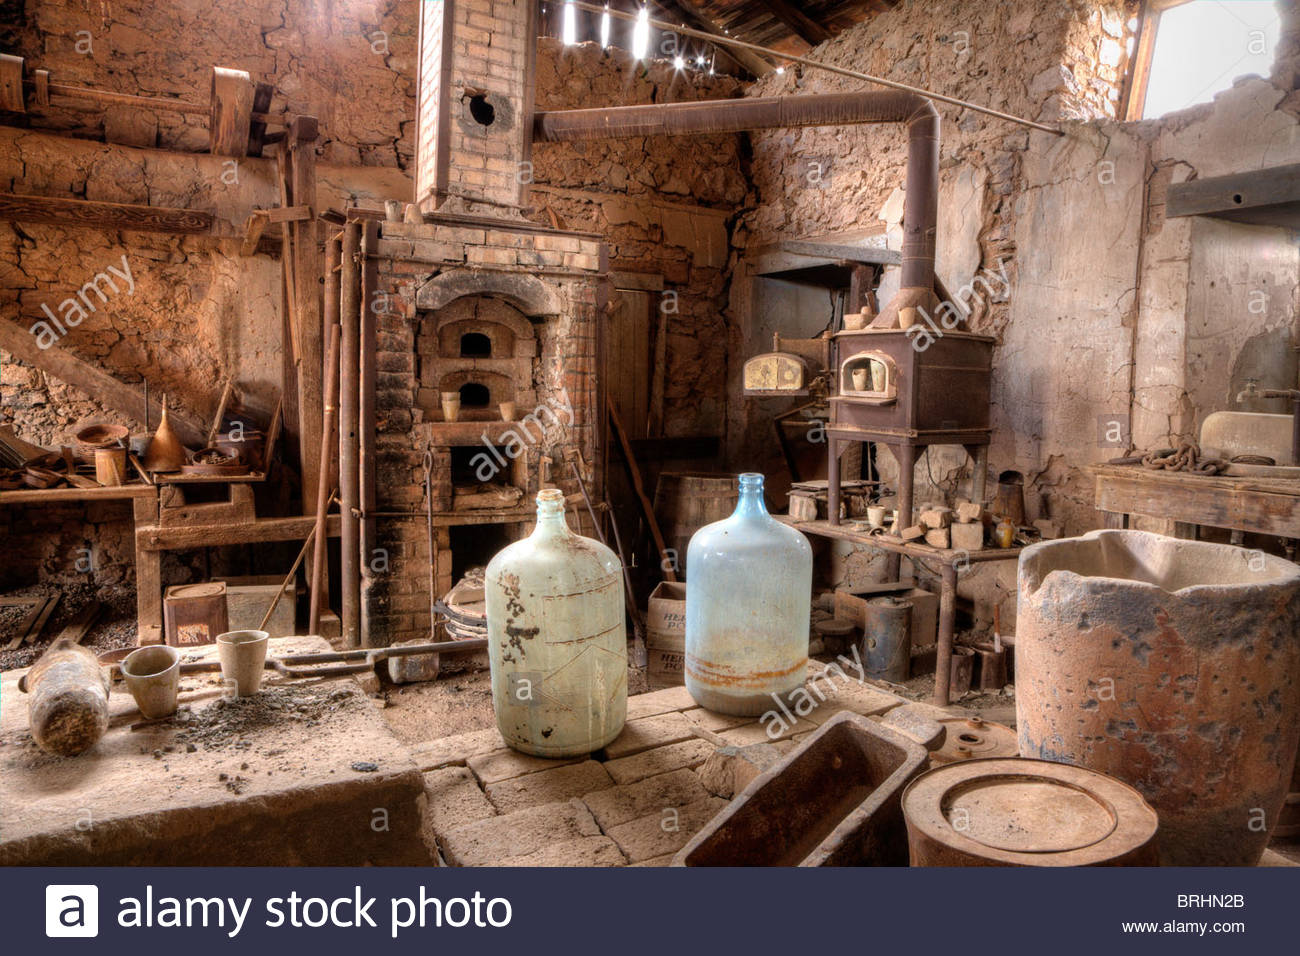 A well-preserved assay office in a ghost gold mining town. - Stock Image